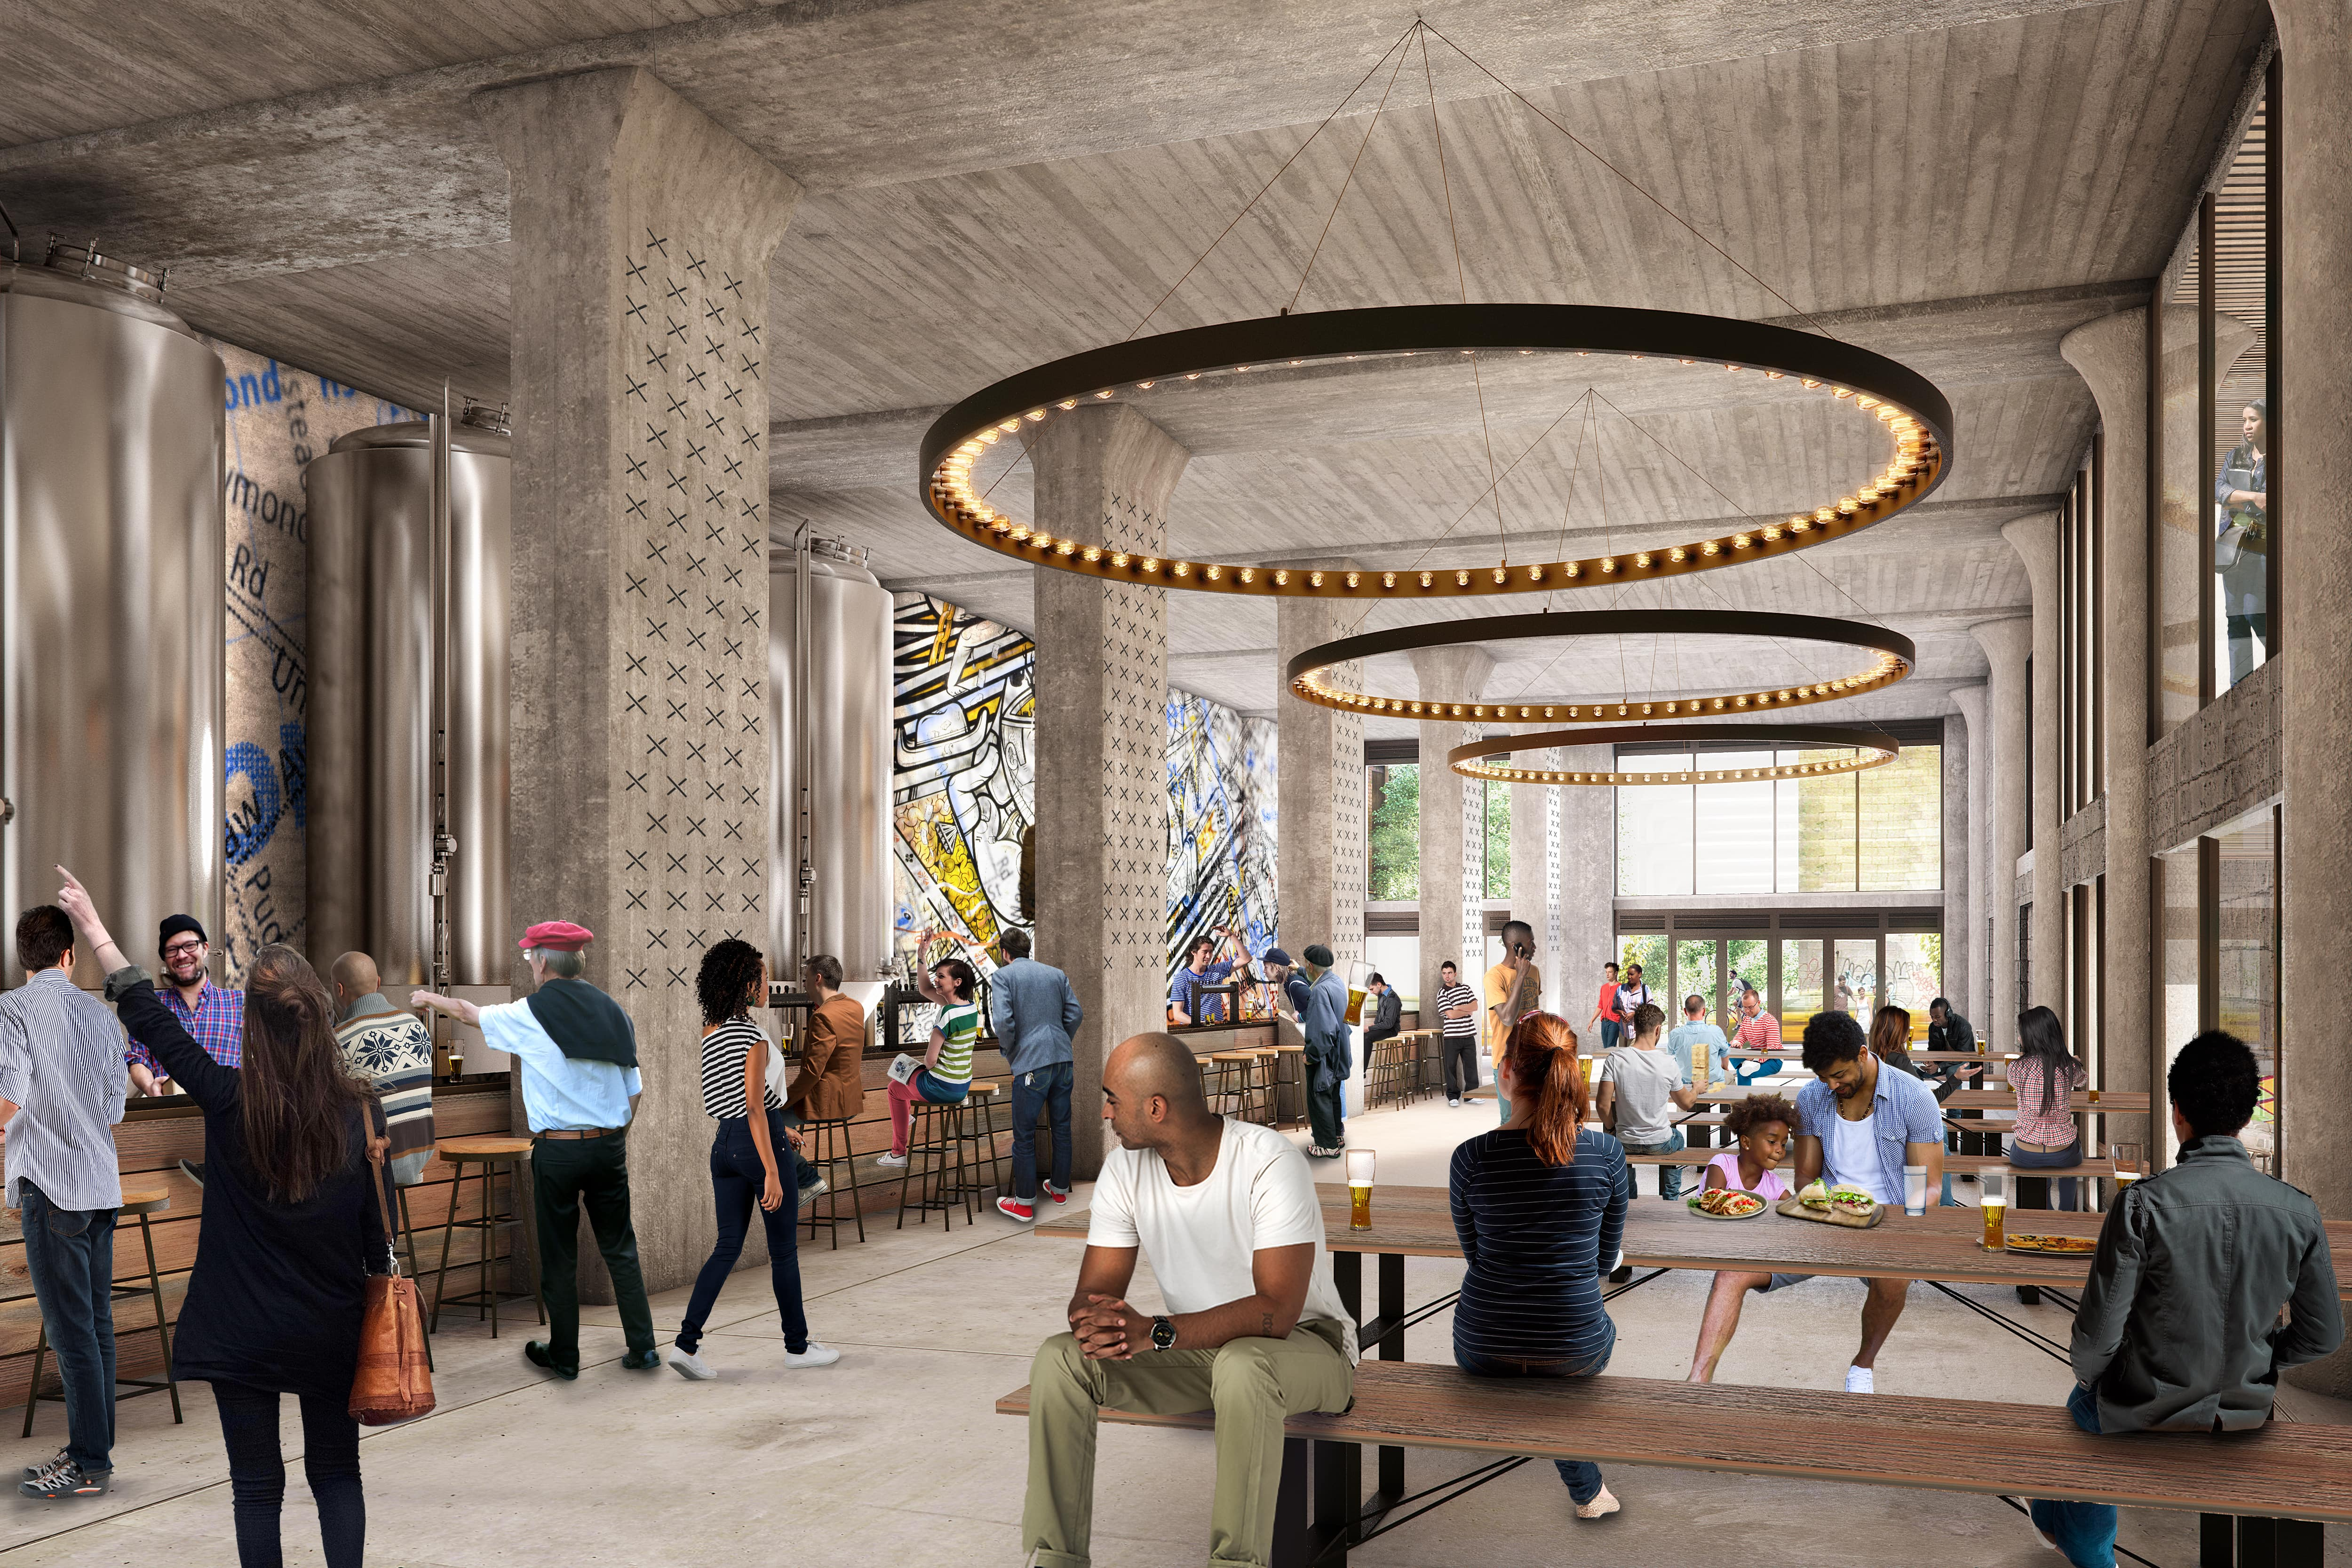 Large spaces on the lower floors will make way for people to eat, socialize and gather. Designed by Woods Bagot